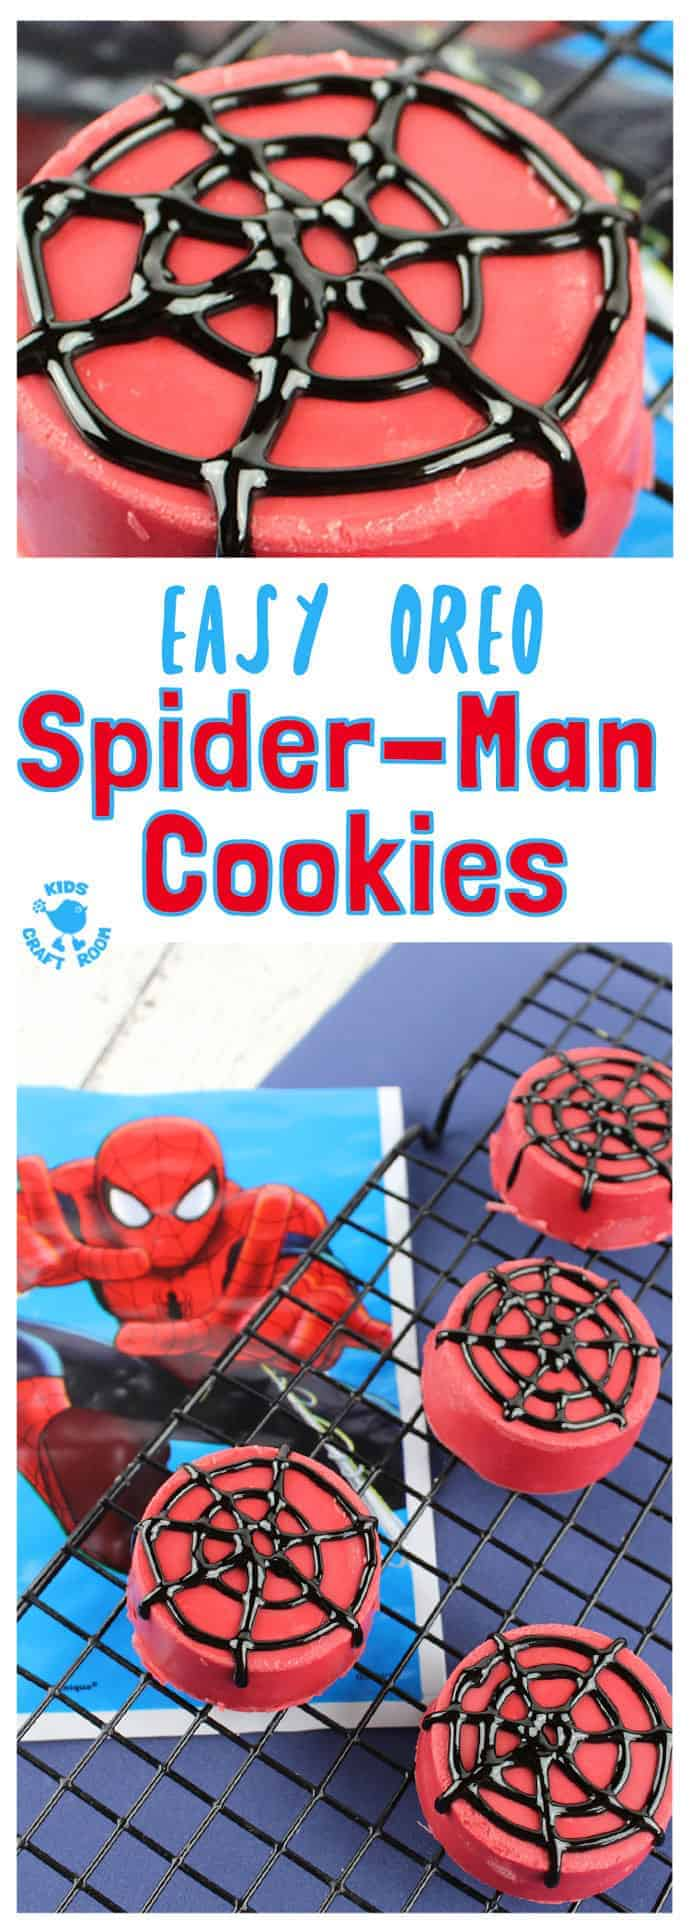 OREO SPIDER-MAN COOKIES - Great for cooking with kids. They look awesome, taste delicious and are super easy to make. A Spider-Man recipe great for Spider-Man parties and movie nights. A fun spider activity for Spider-Man fans big and small.#cookingwithkids #kidsrecipes #kidsinthekitchen  #desserts #oreos #cookies #biscuits #spiderman #kidscraftroom